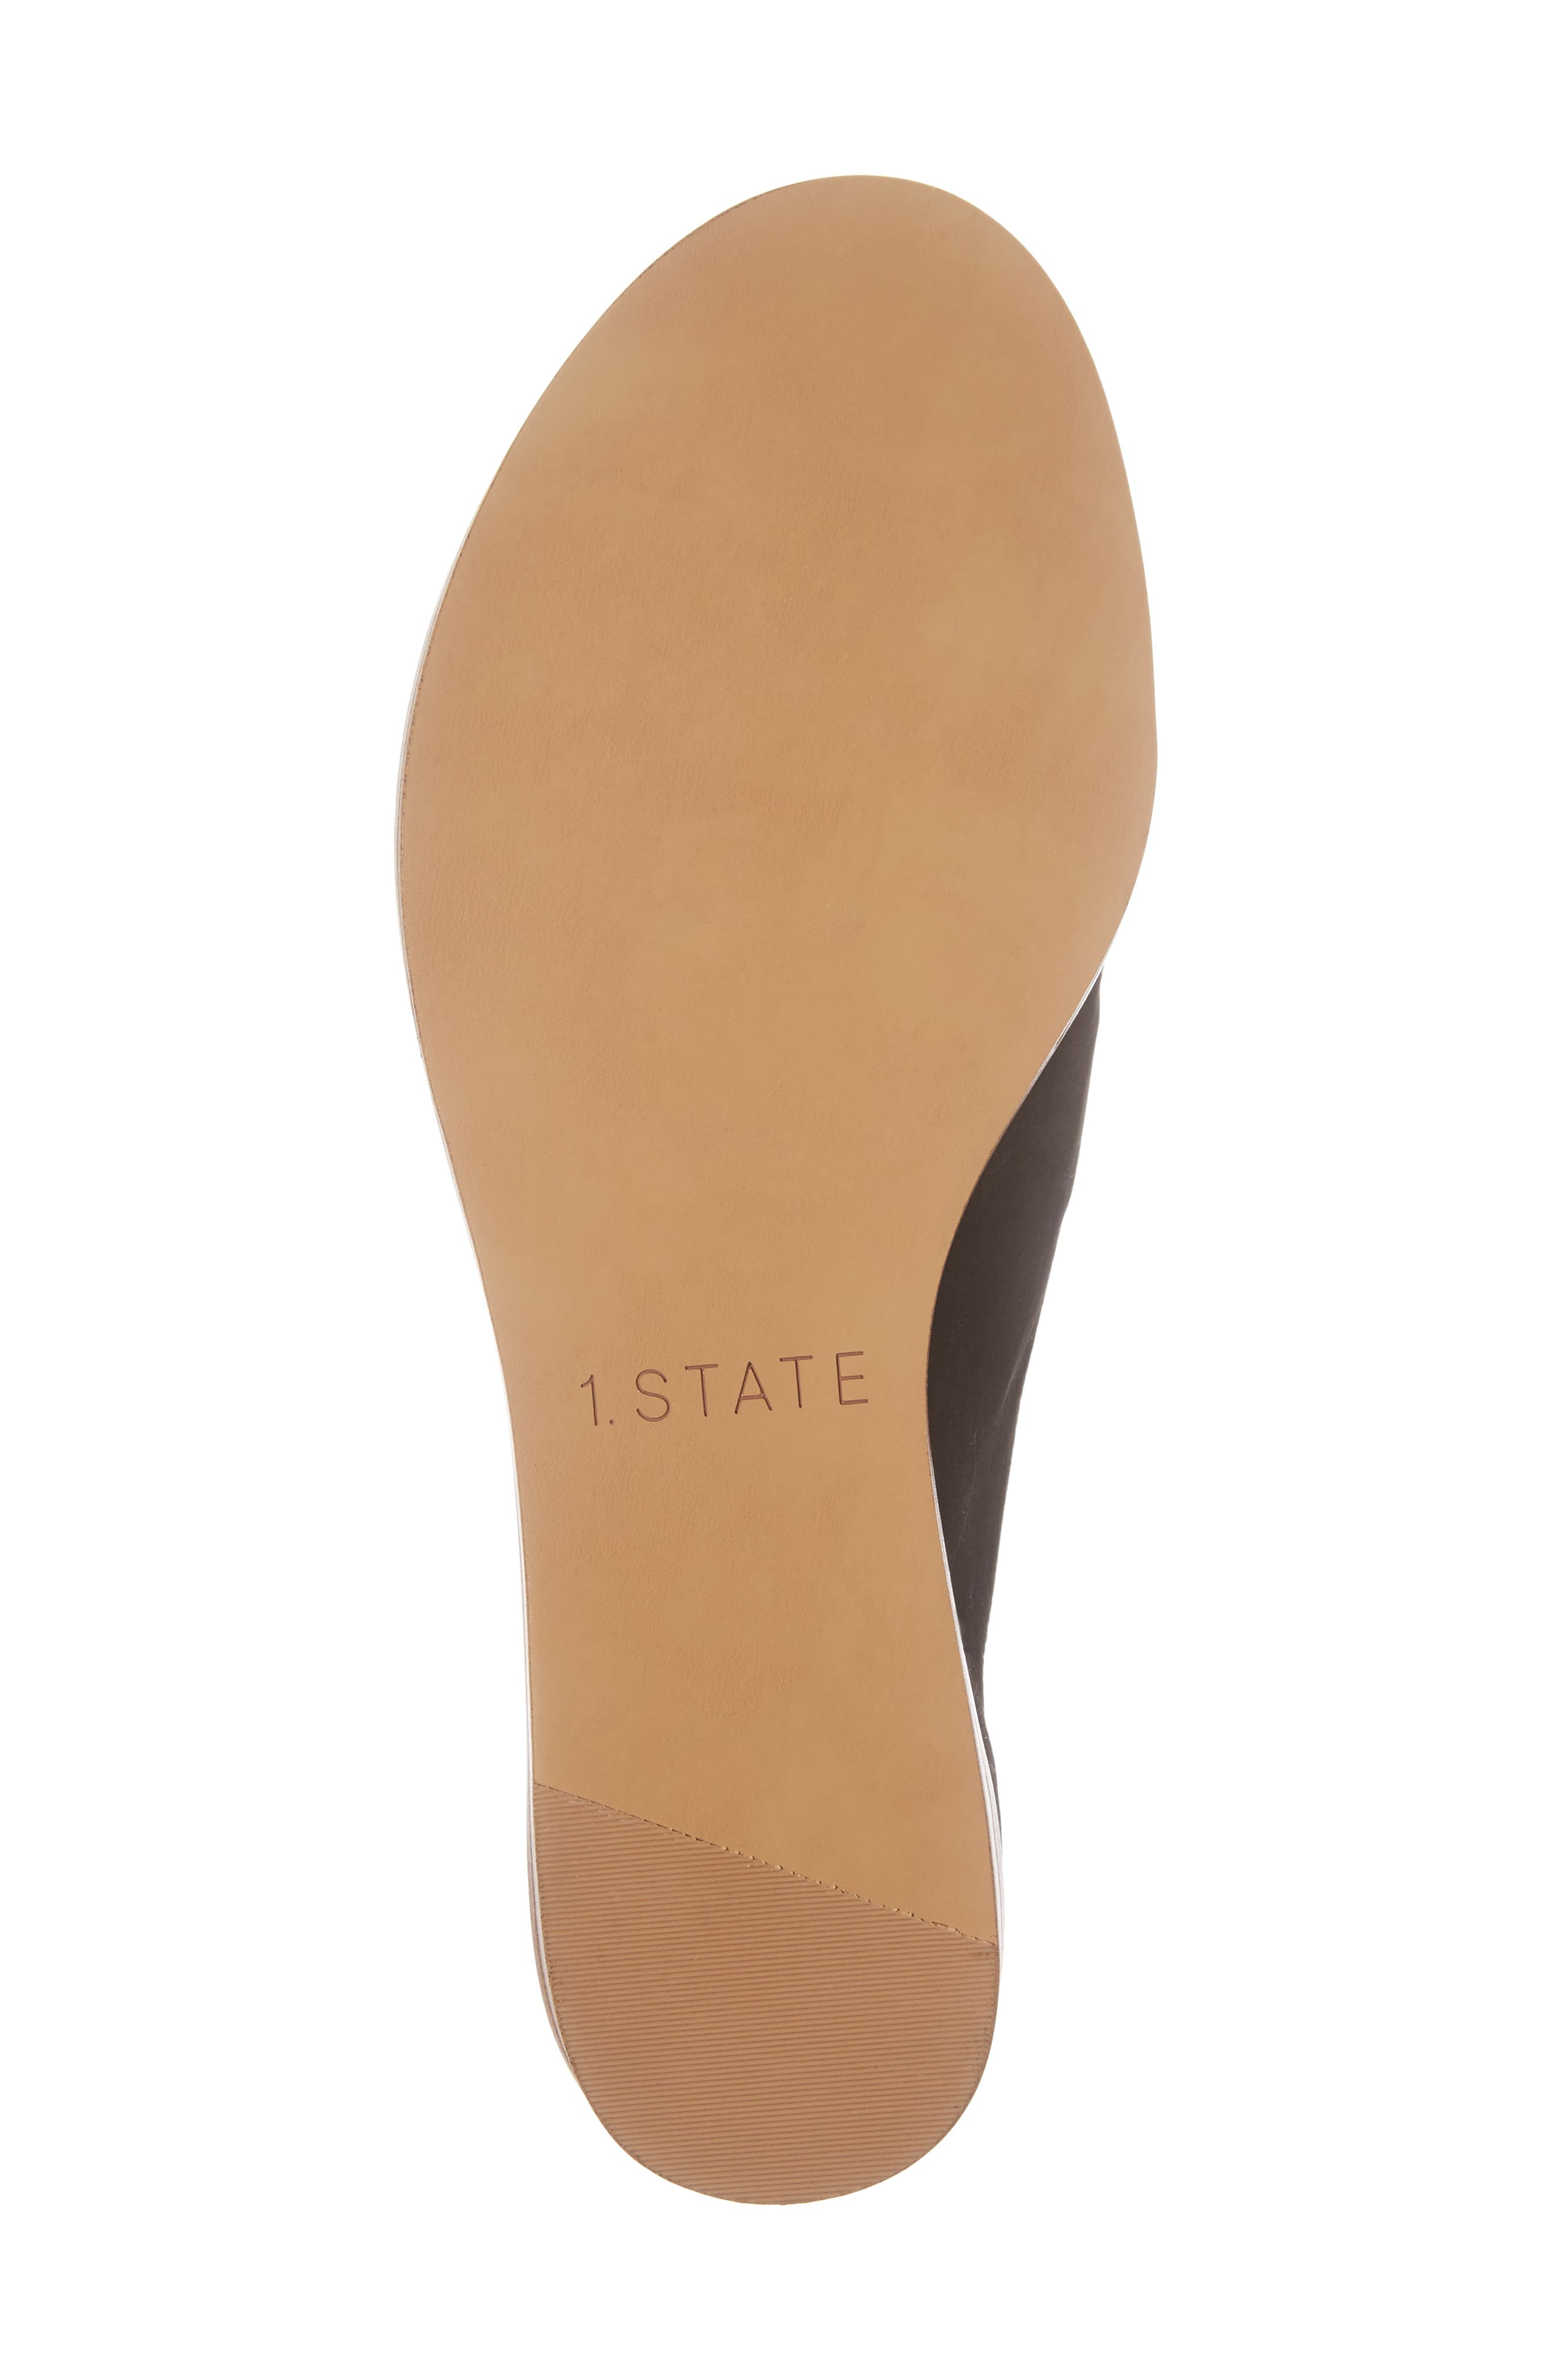 Cassidee Open Toe Flat,                             Alternate thumbnail 6, color,                             001